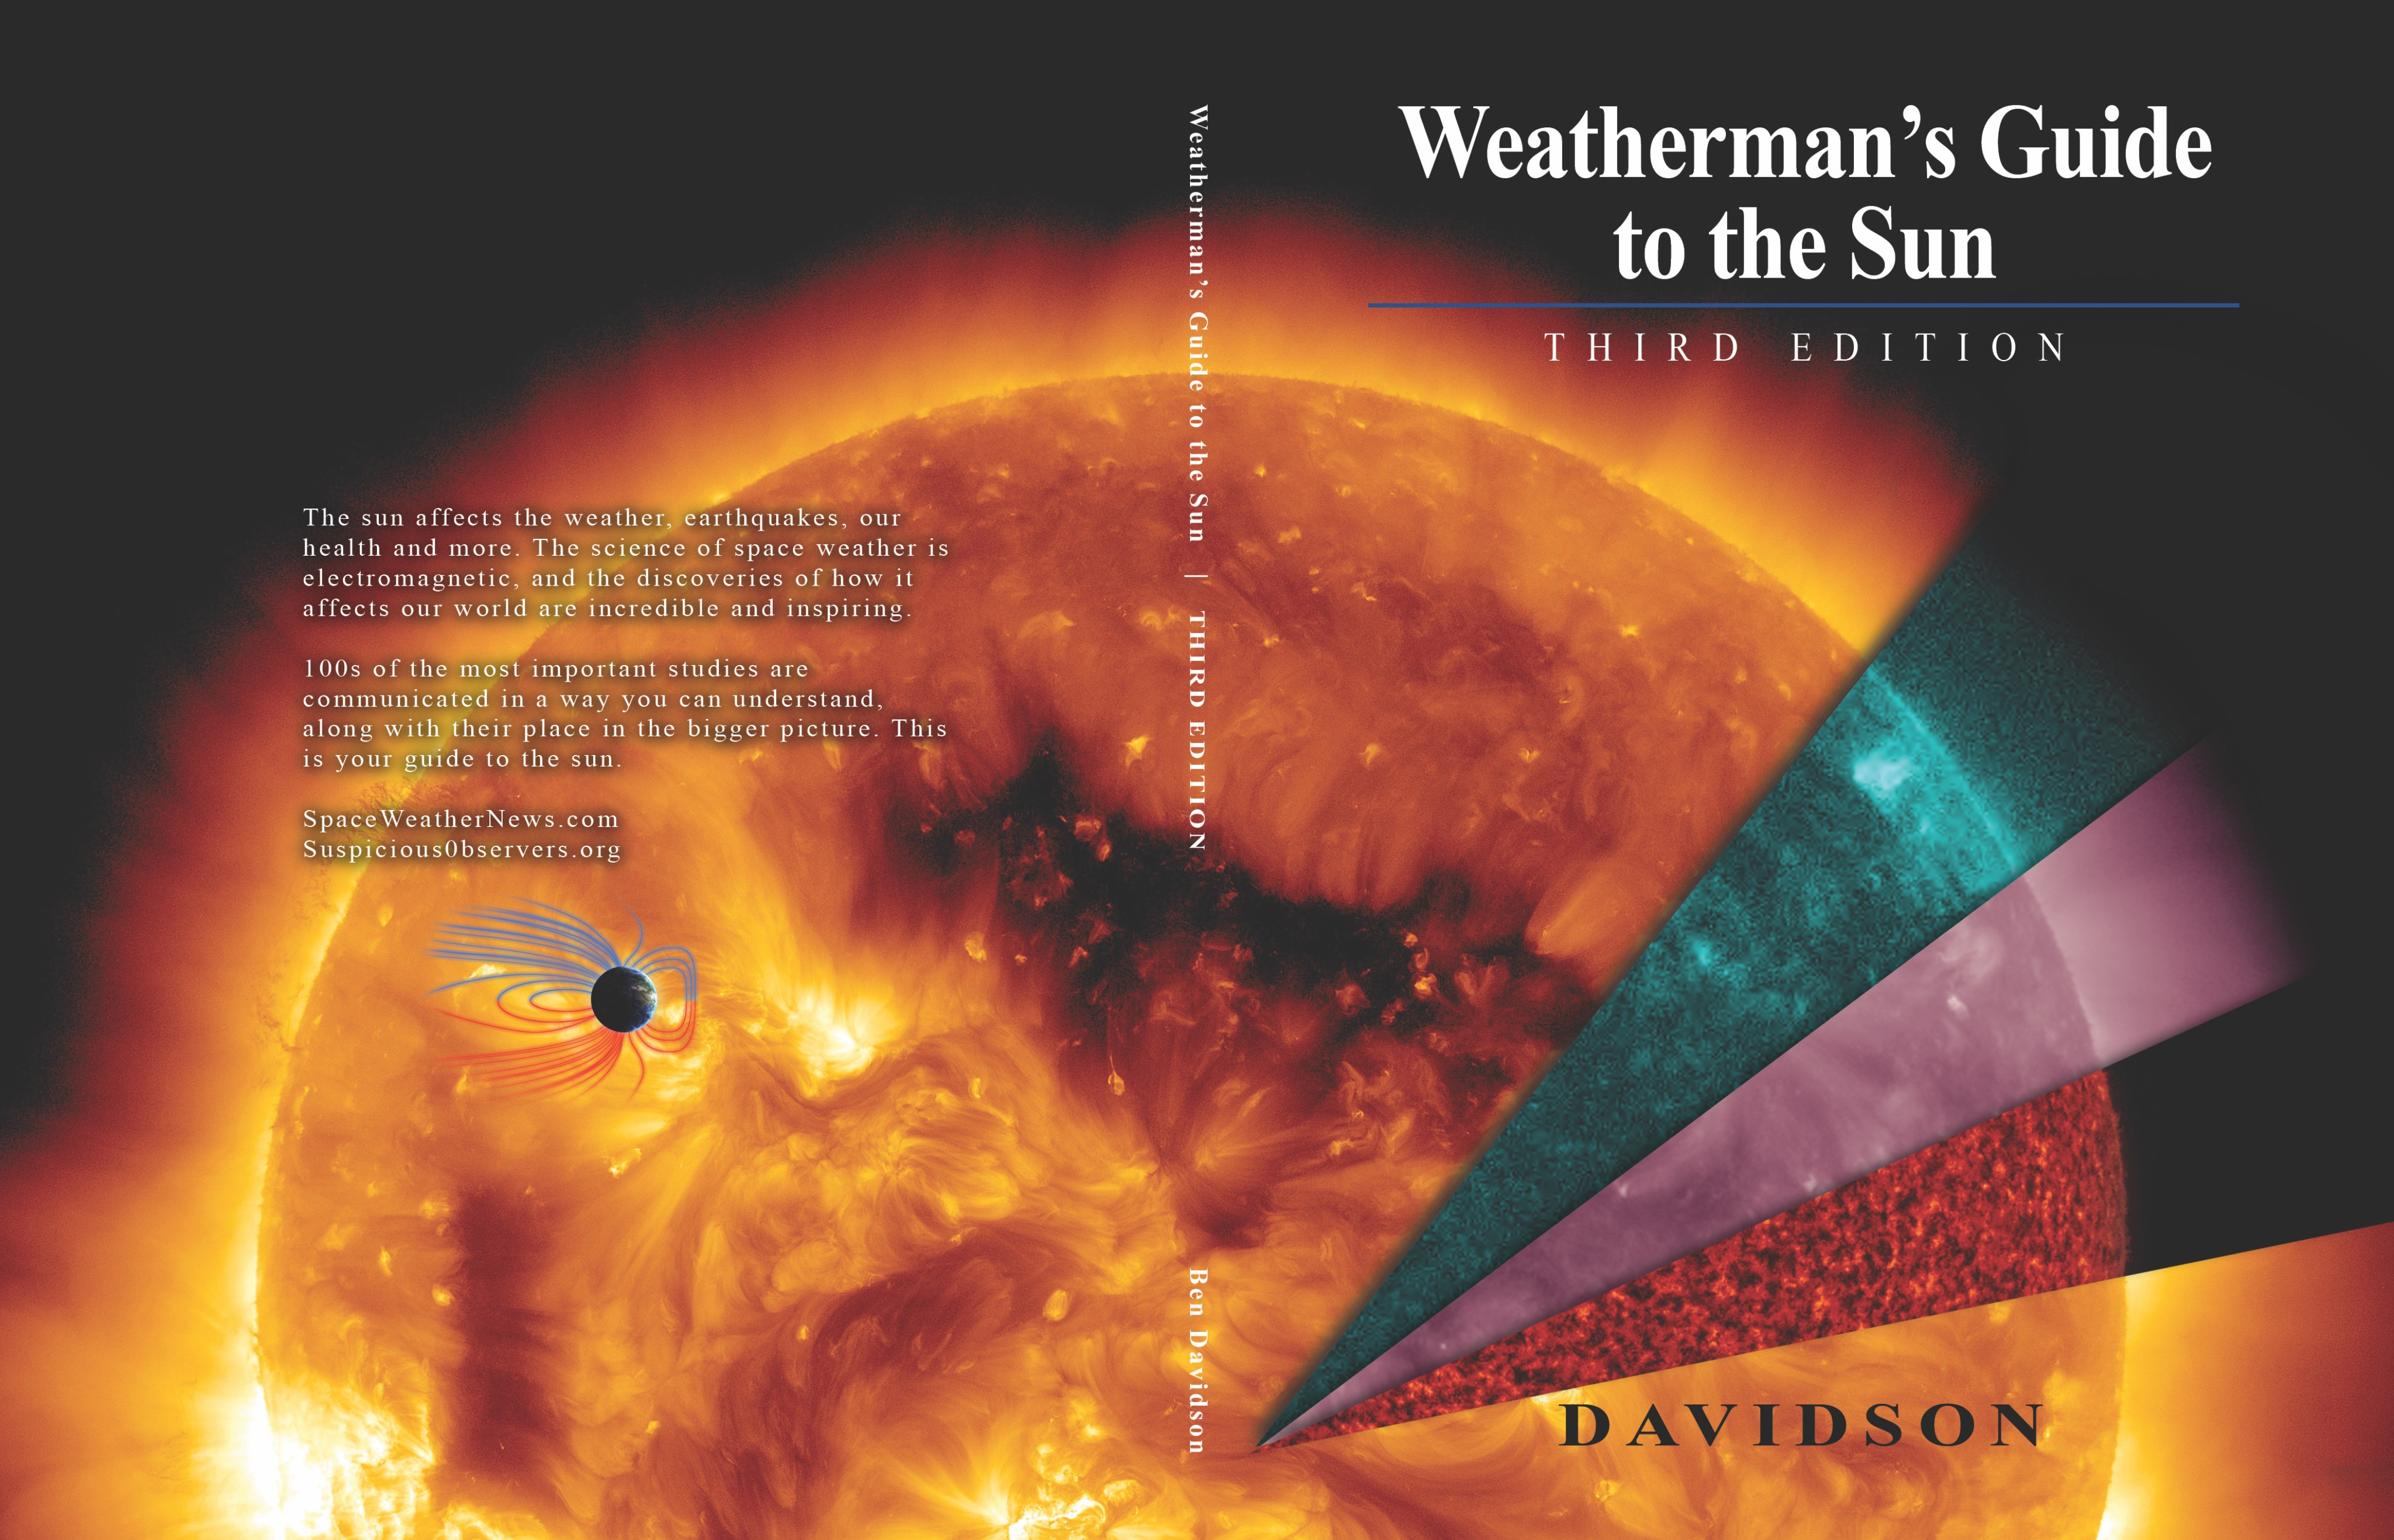 Weatherman's Guide to the Sun | Third Edition - PDF Version